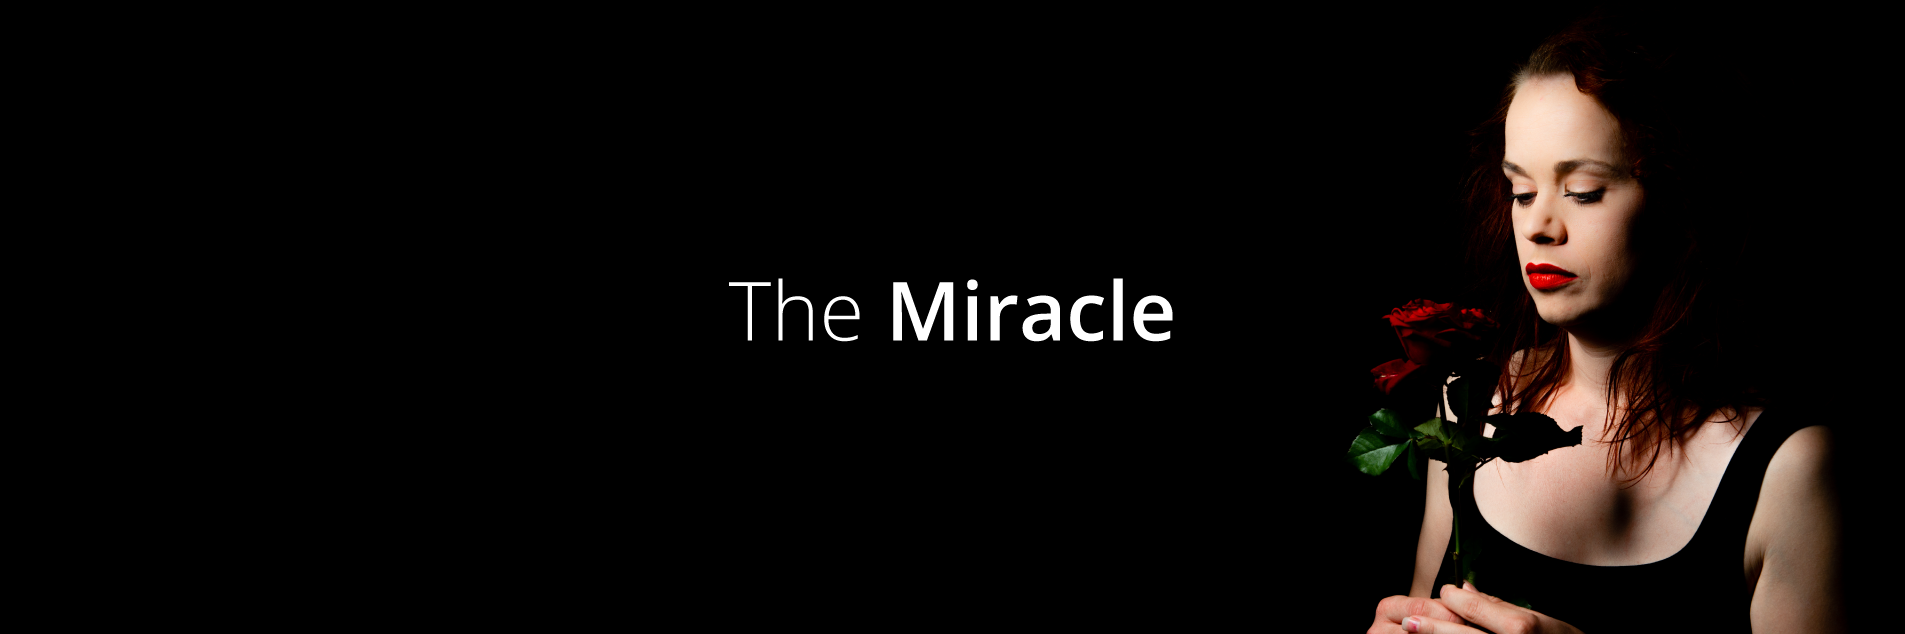 The-Miracle